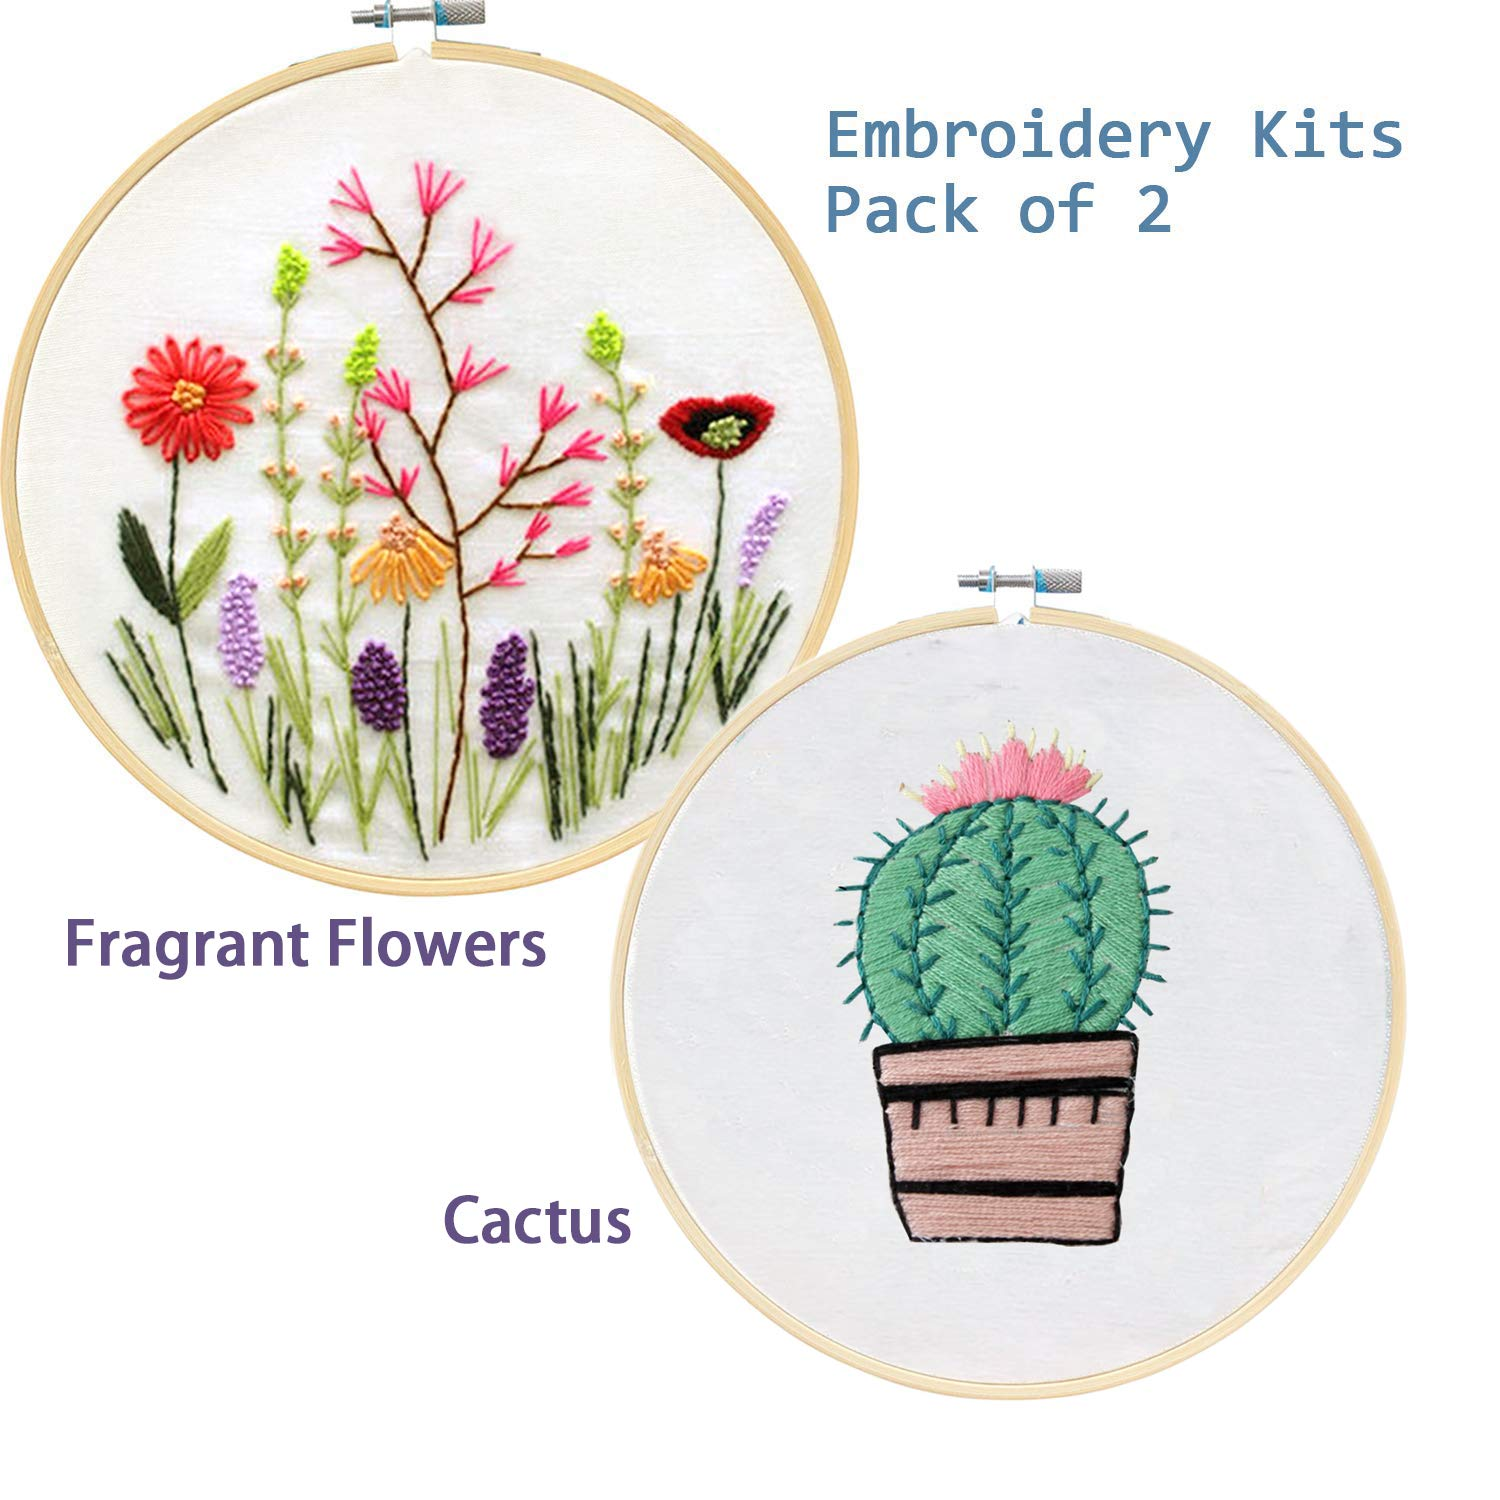 Fragrant/&Floralhoop Bamboo Embroidery Hoop Color Threads and Tools Kit Unime Full Range of Embroidery Starter Kit with Partten Cross Stitch Kit Including Embroidery Cloth with Color Pattern